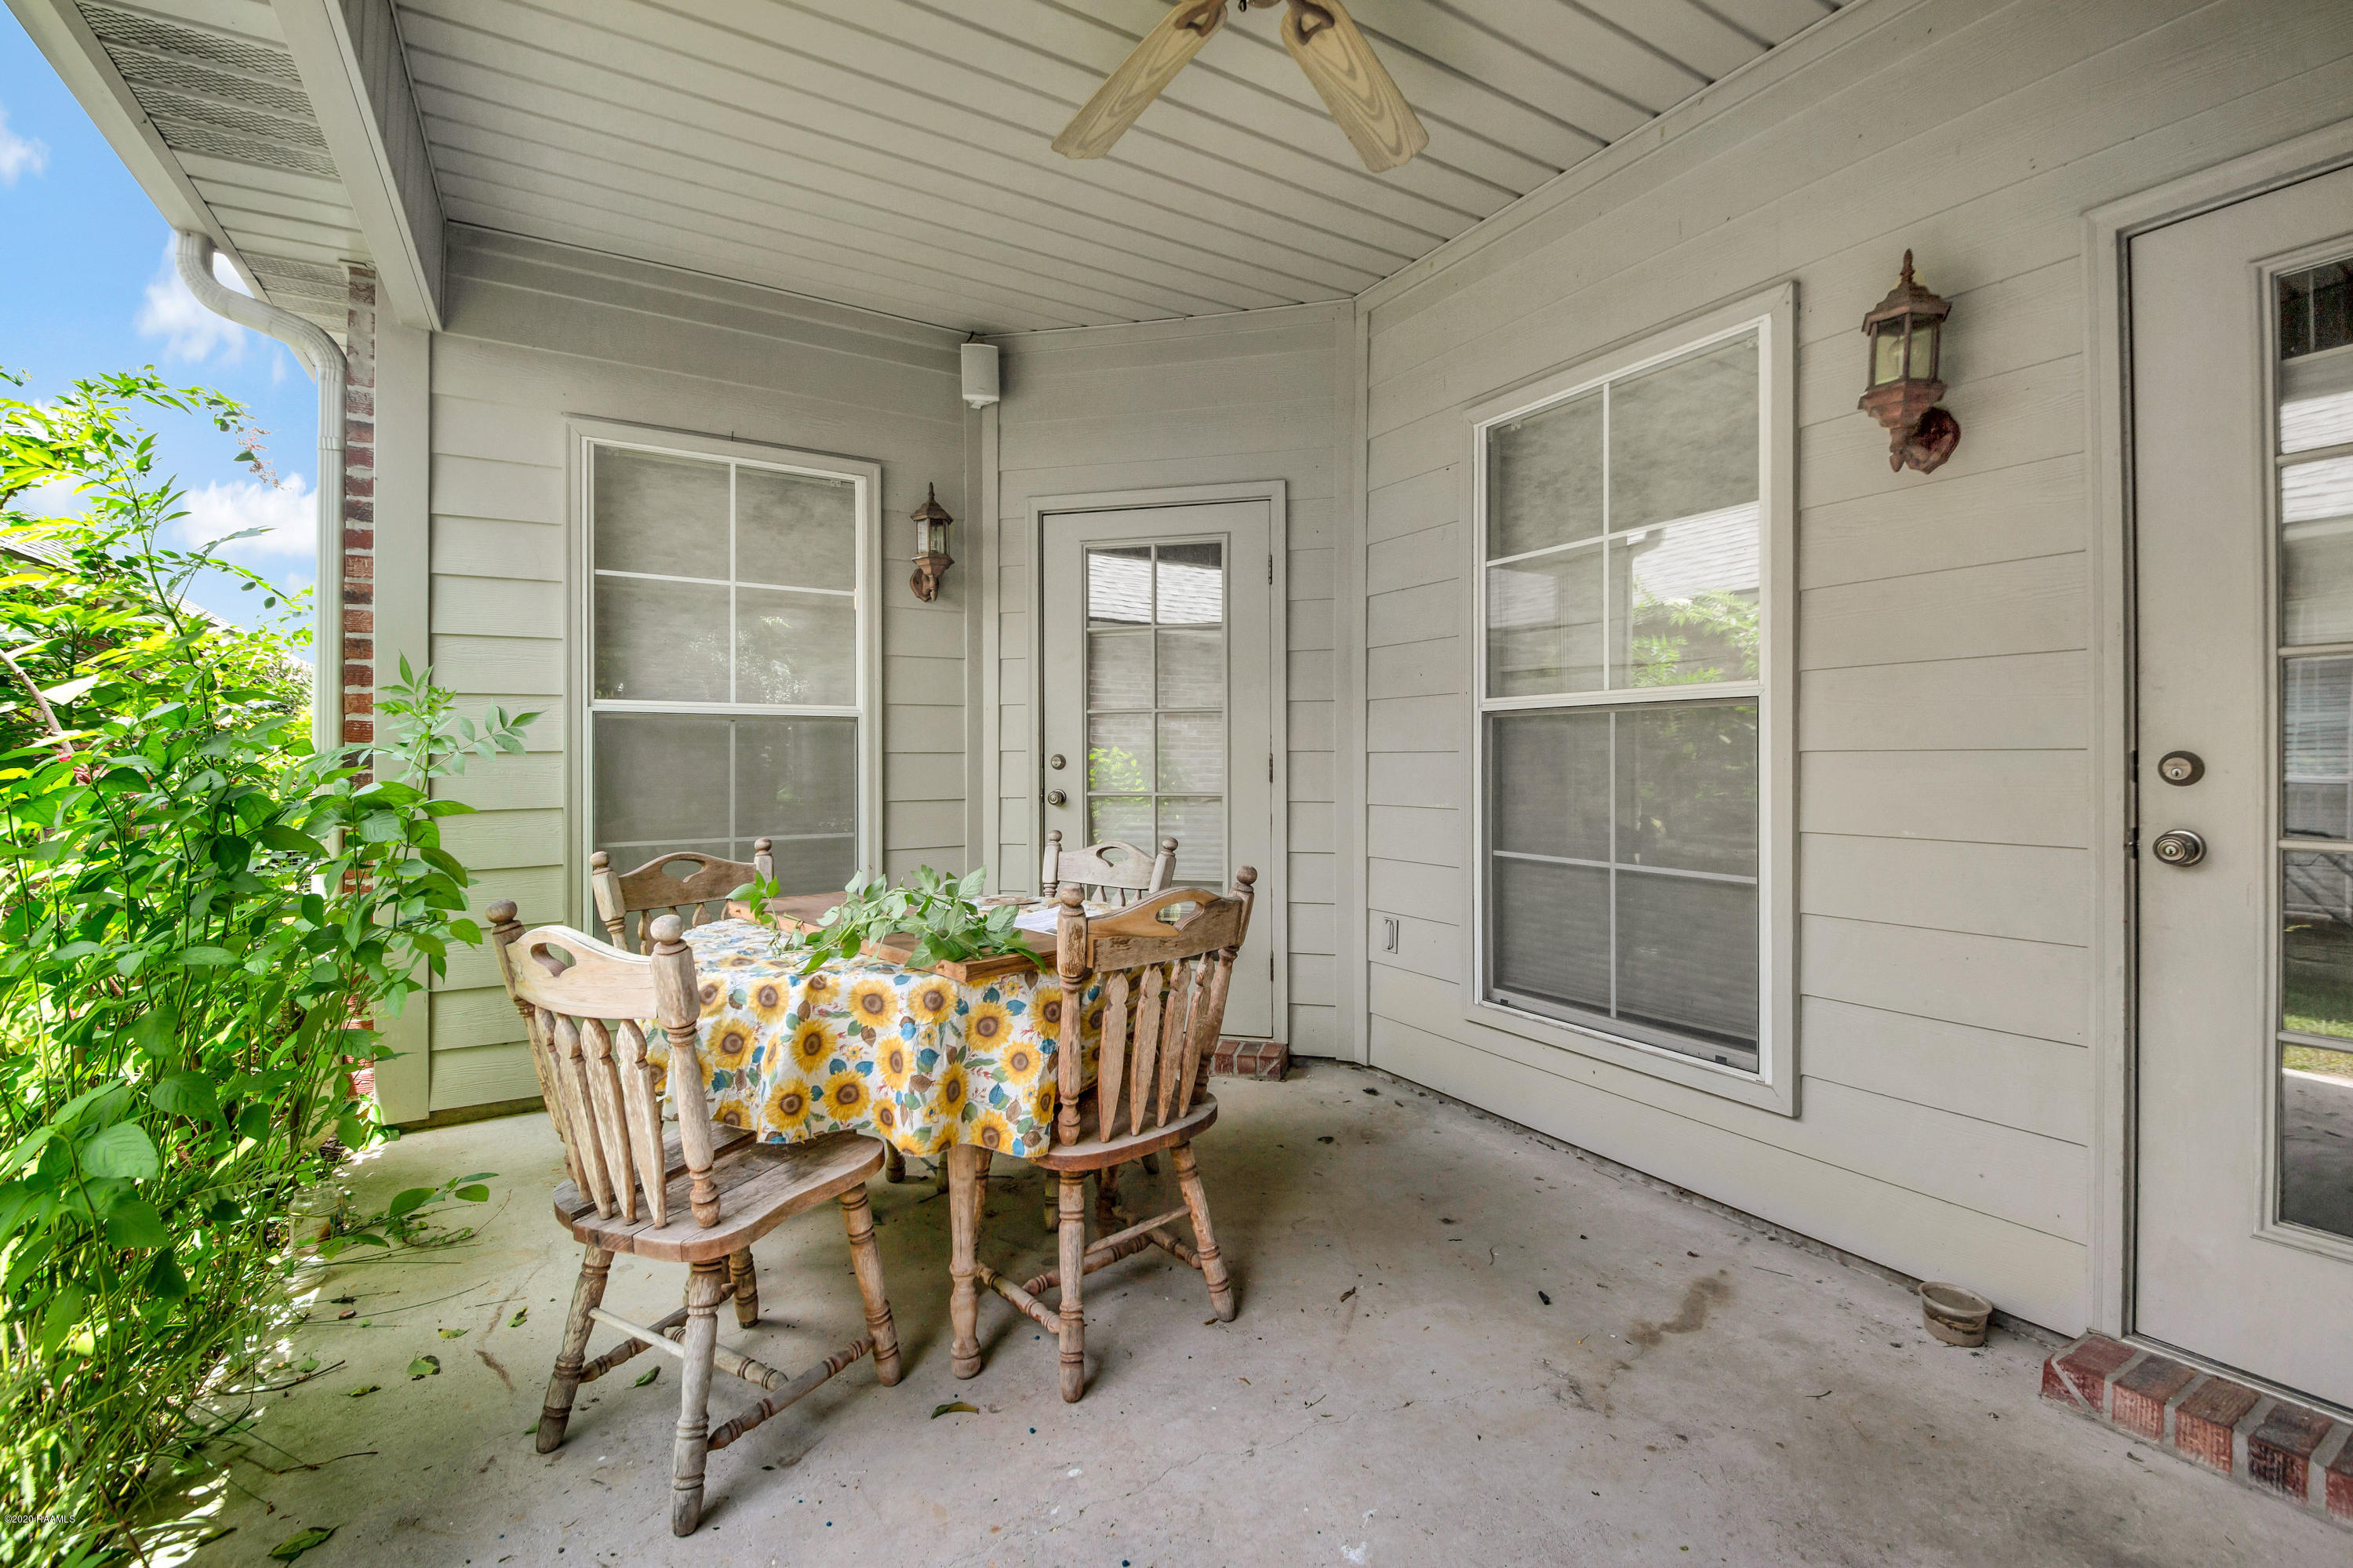 101 Nickland Drive, Scott, LA 70583 Photo #24